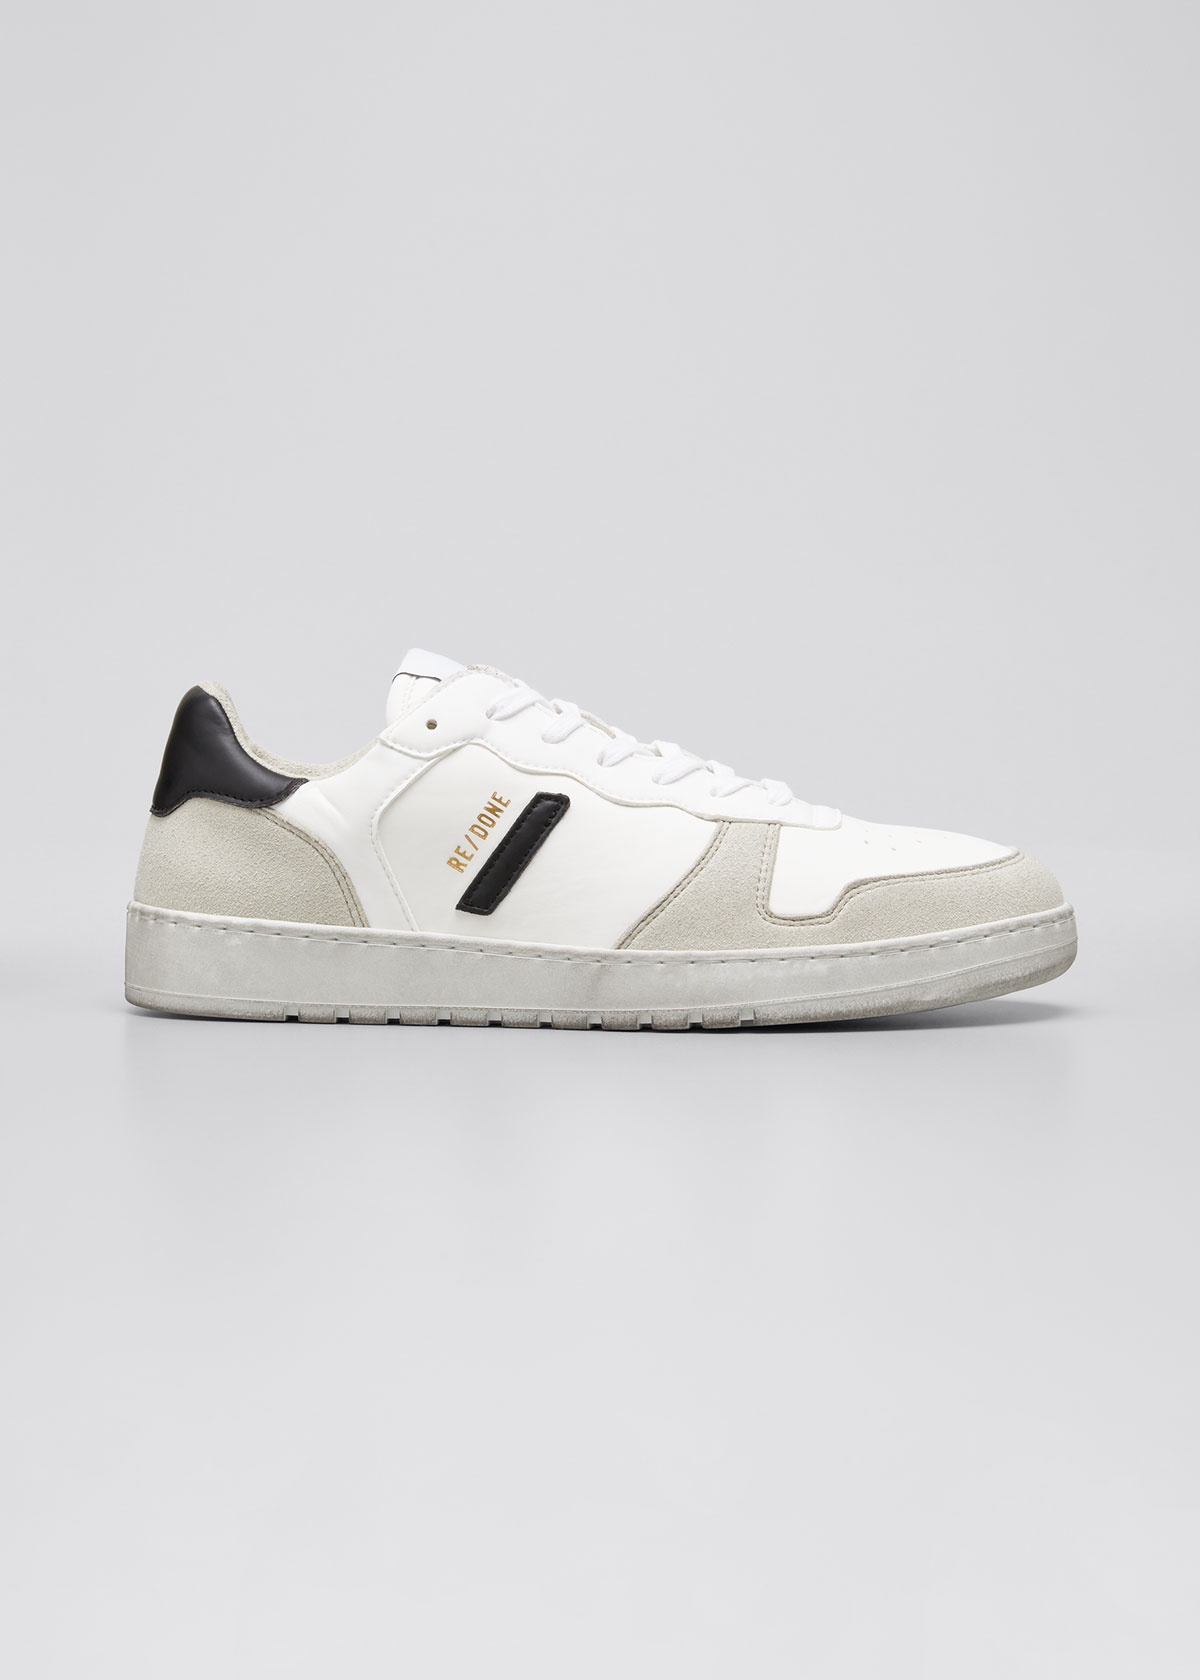 Re/done SUSTAINABLE LOW-TOP 80S BASKETBALL SNEAKERS